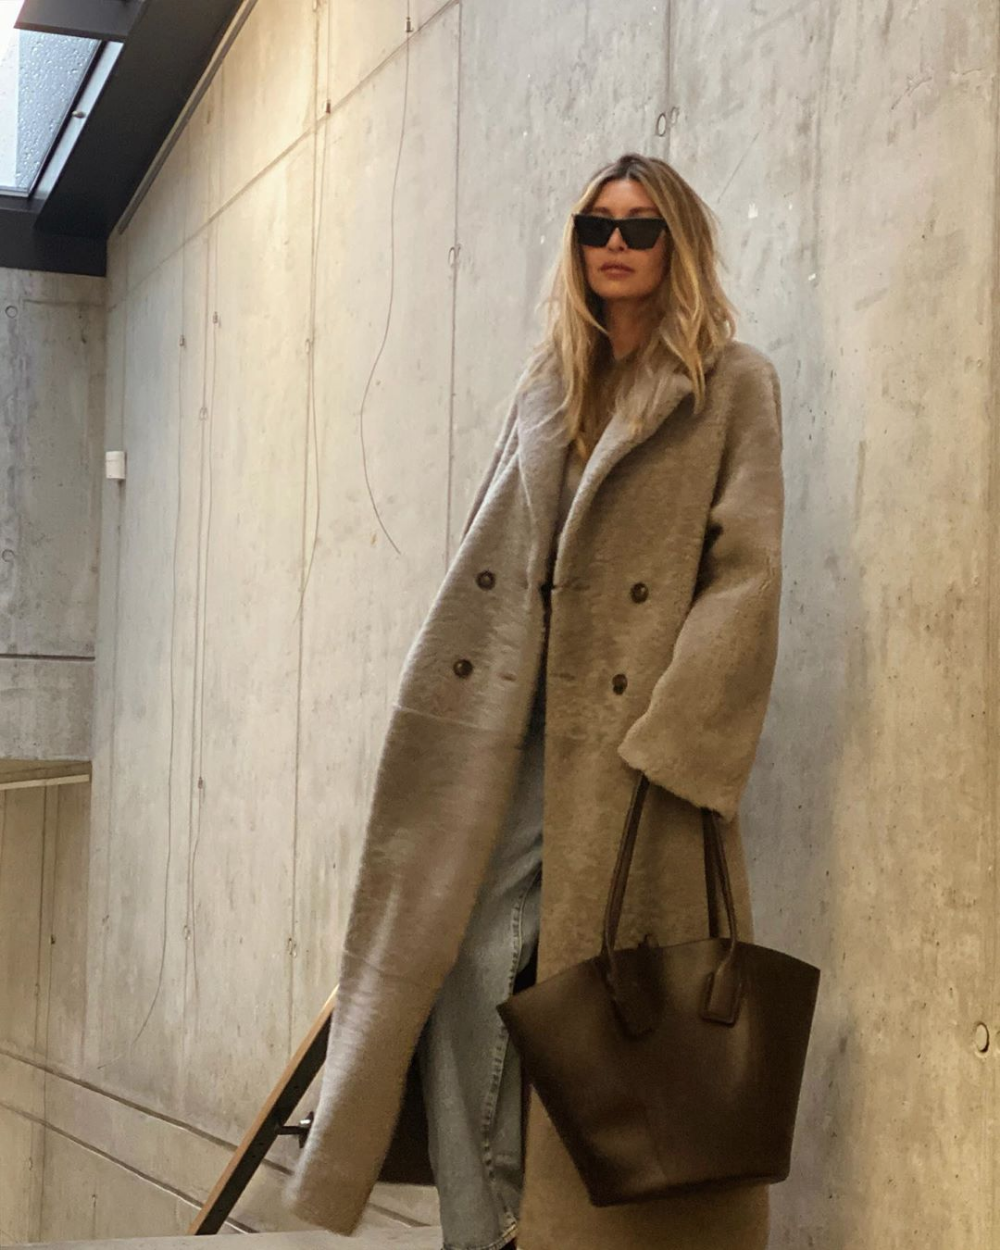 We're Obsessed With This Teddy Coat Look From Instagram 1